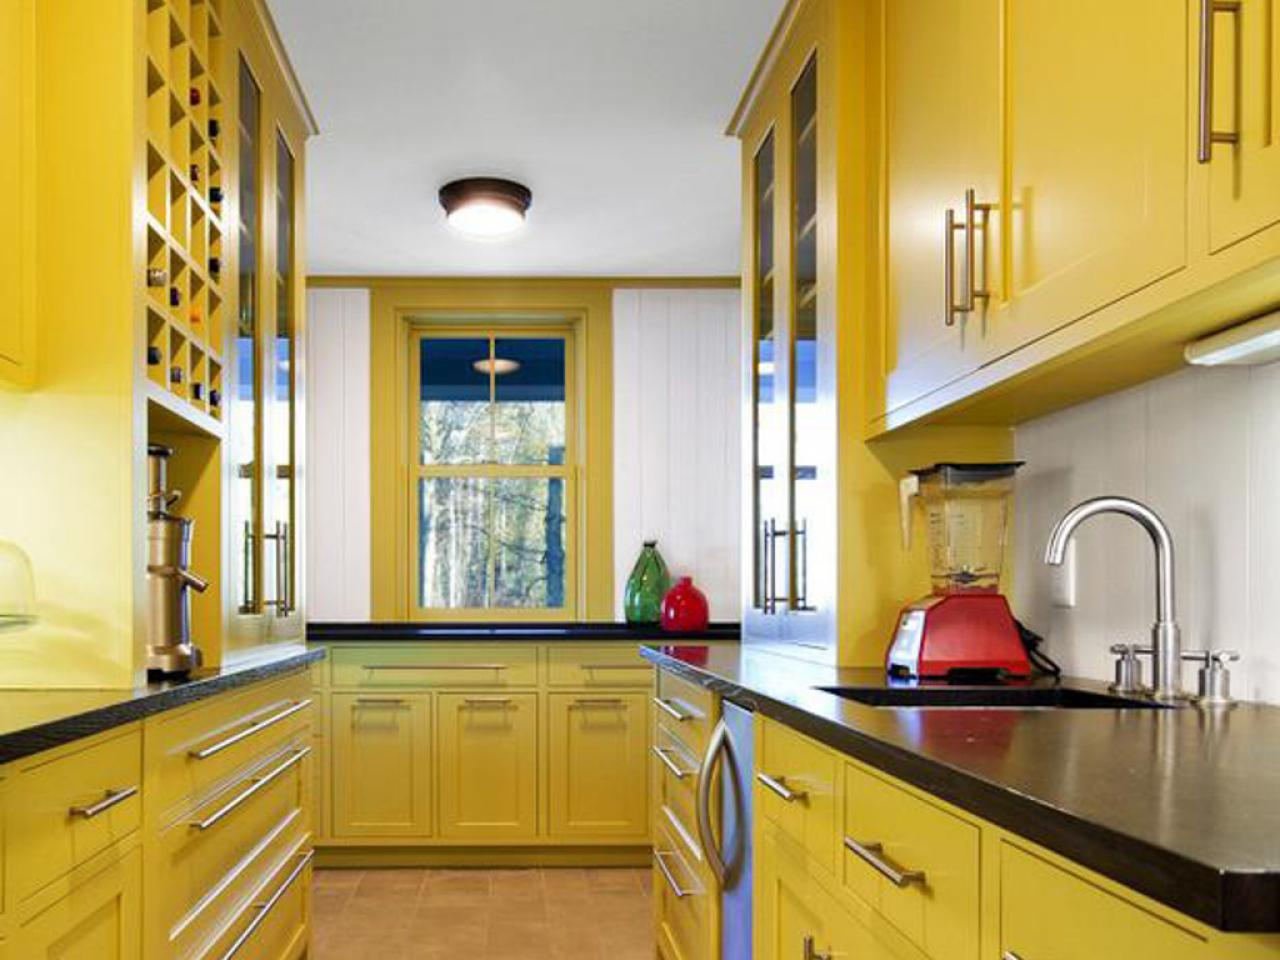 Yellow Paint Colors Yellow Paint For Kitchens Pictures Ideas & Tips From Hgtv  Hgtv